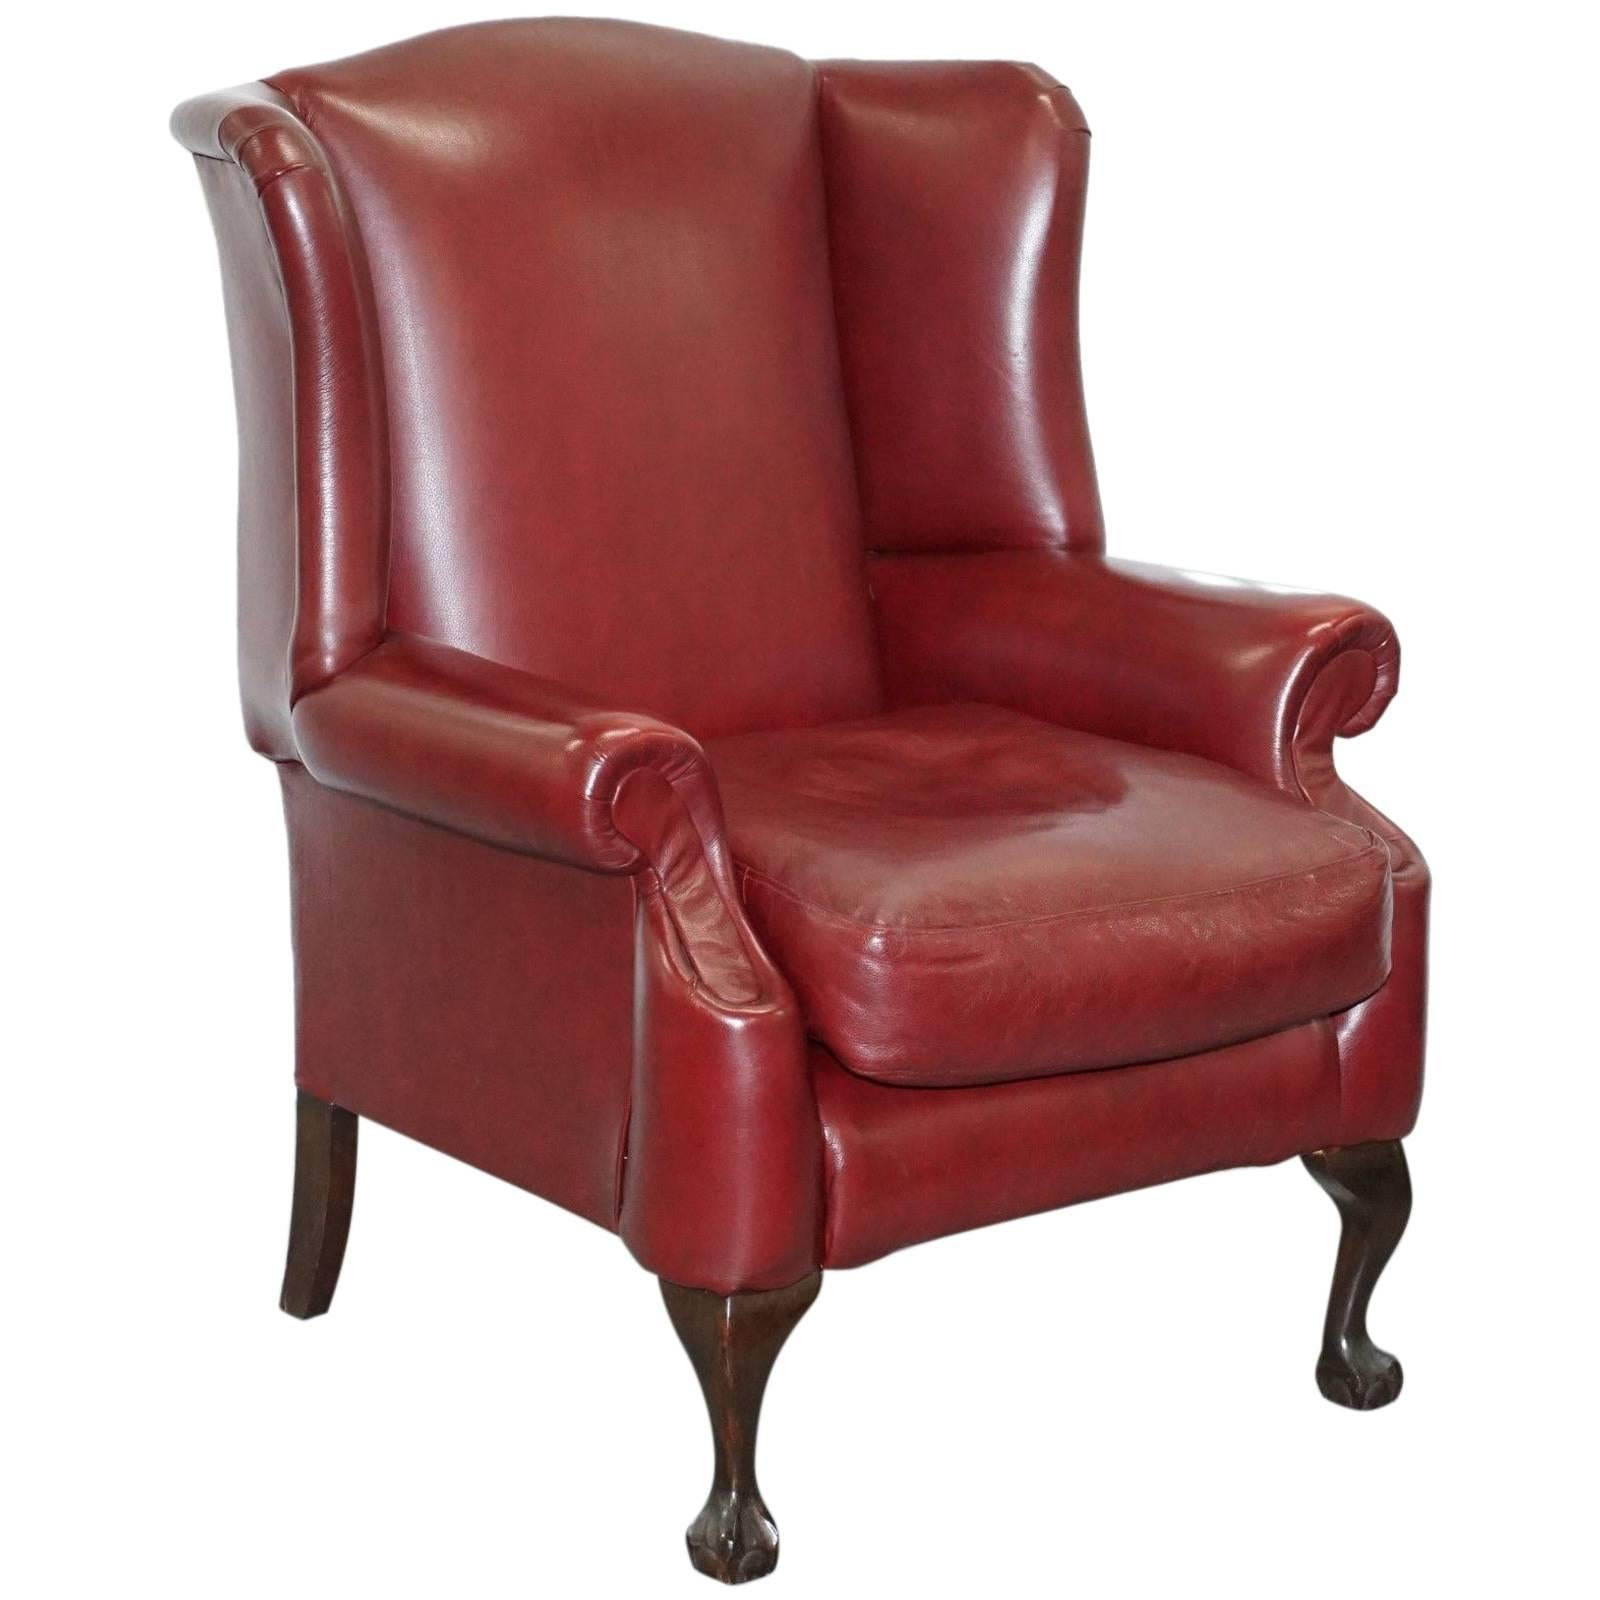 oxblood leather wing chair portable beach hammock claw and ball feet large comfortable queen anne wingback armchair for sale